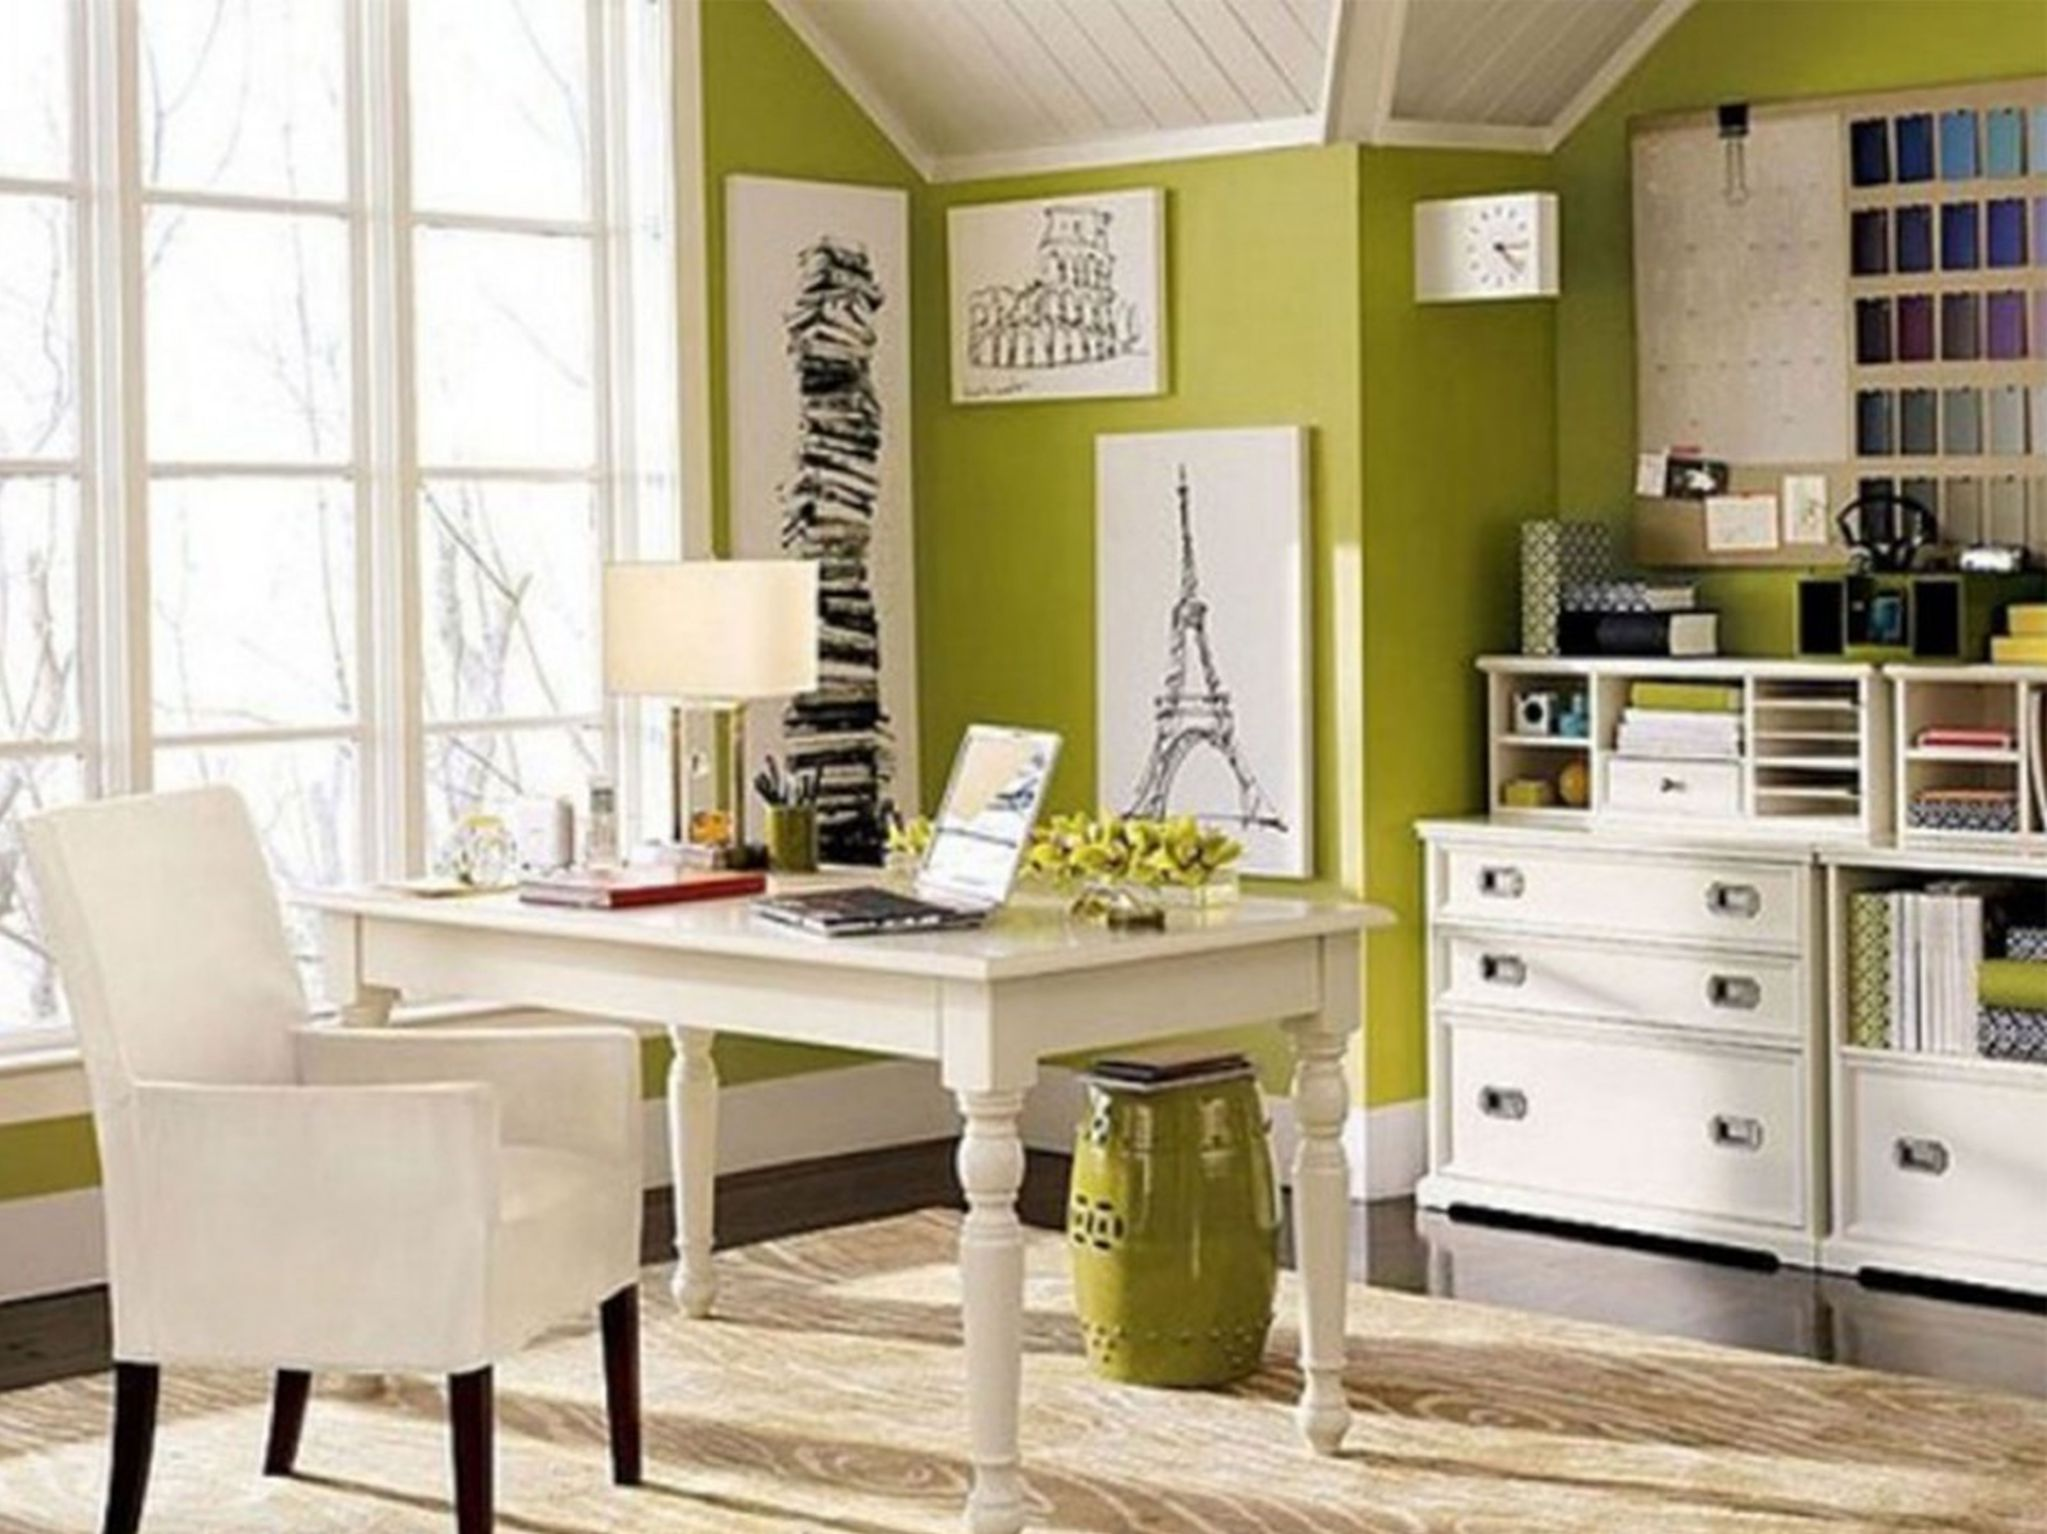 Interesting Desk and Chair also Green Wall For Modern Home Office